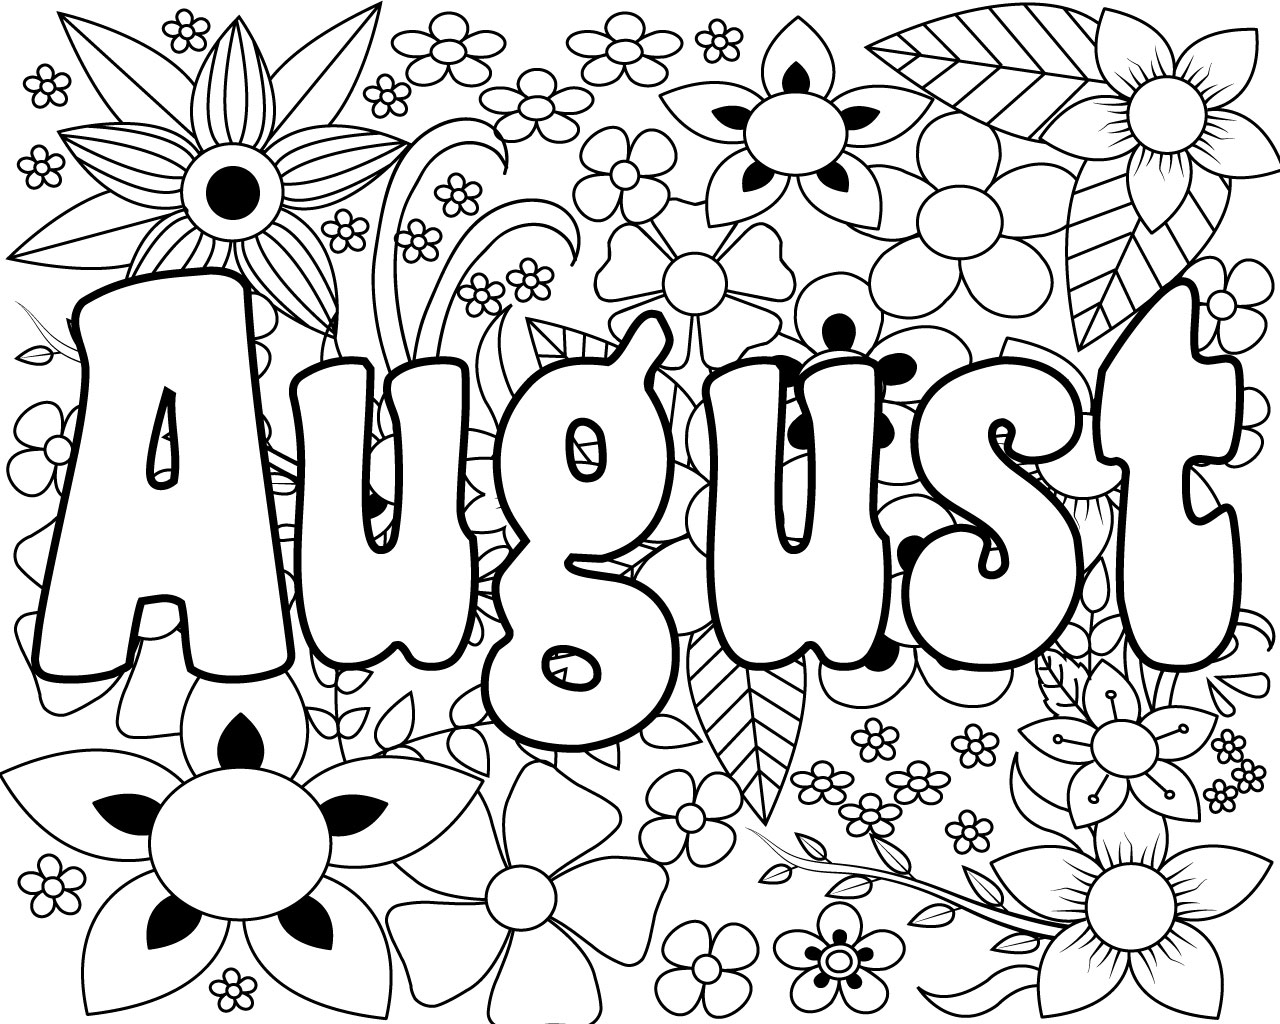 august coloring pages top 15 august coloring pages preschoolers free very unique pages august coloring 1 1